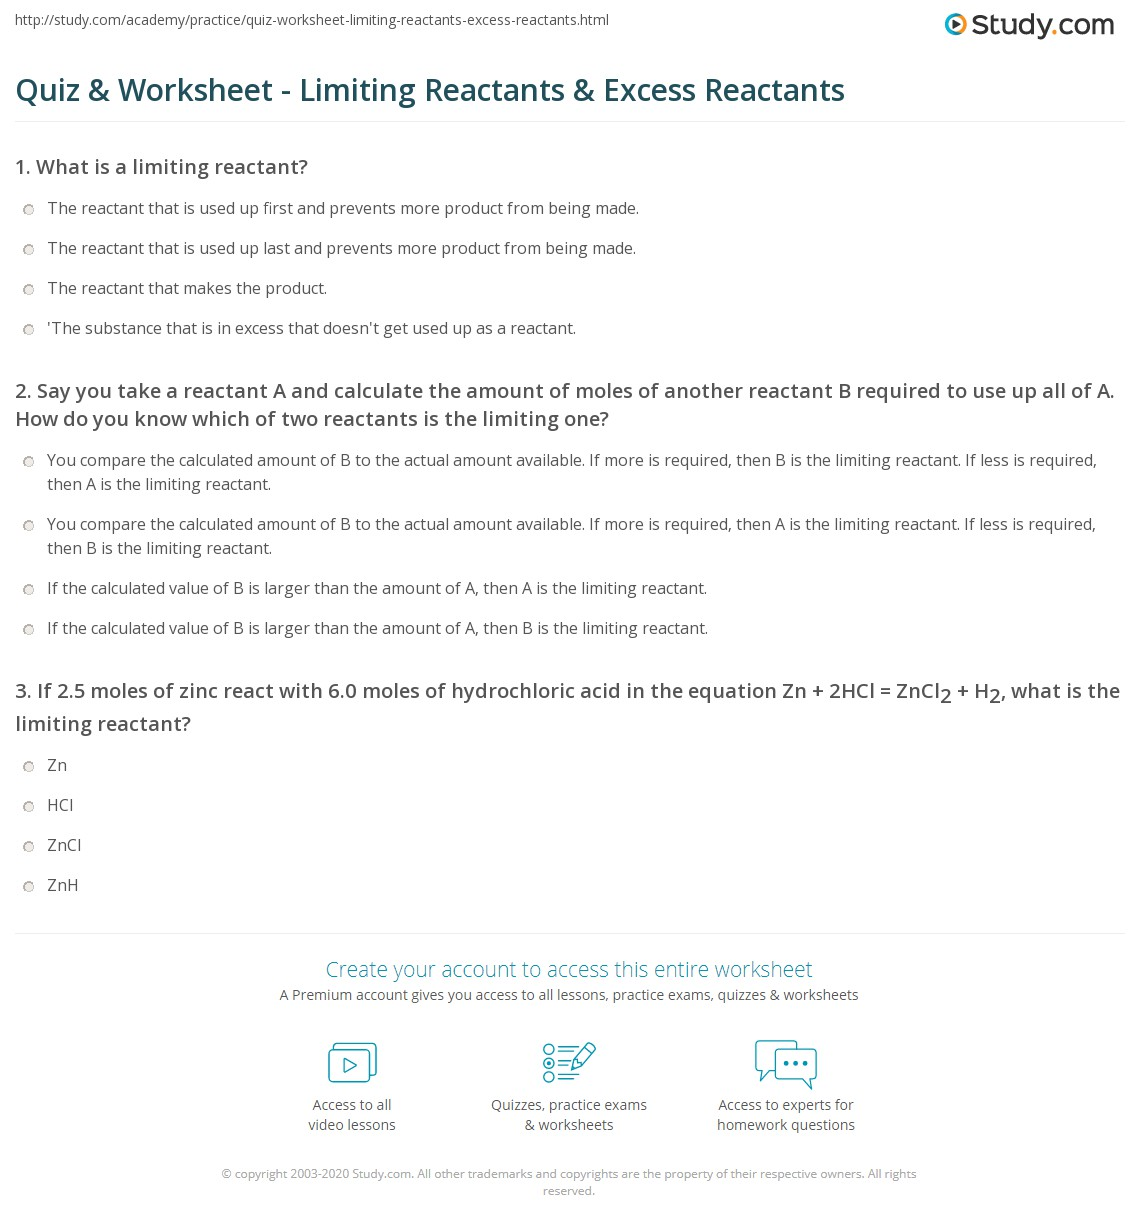 Printables Limiting Reactant Worksheet quiz worksheet limiting reactants excess study com say you take a reactant and calculate the amount of moles another b required to use up all how do you